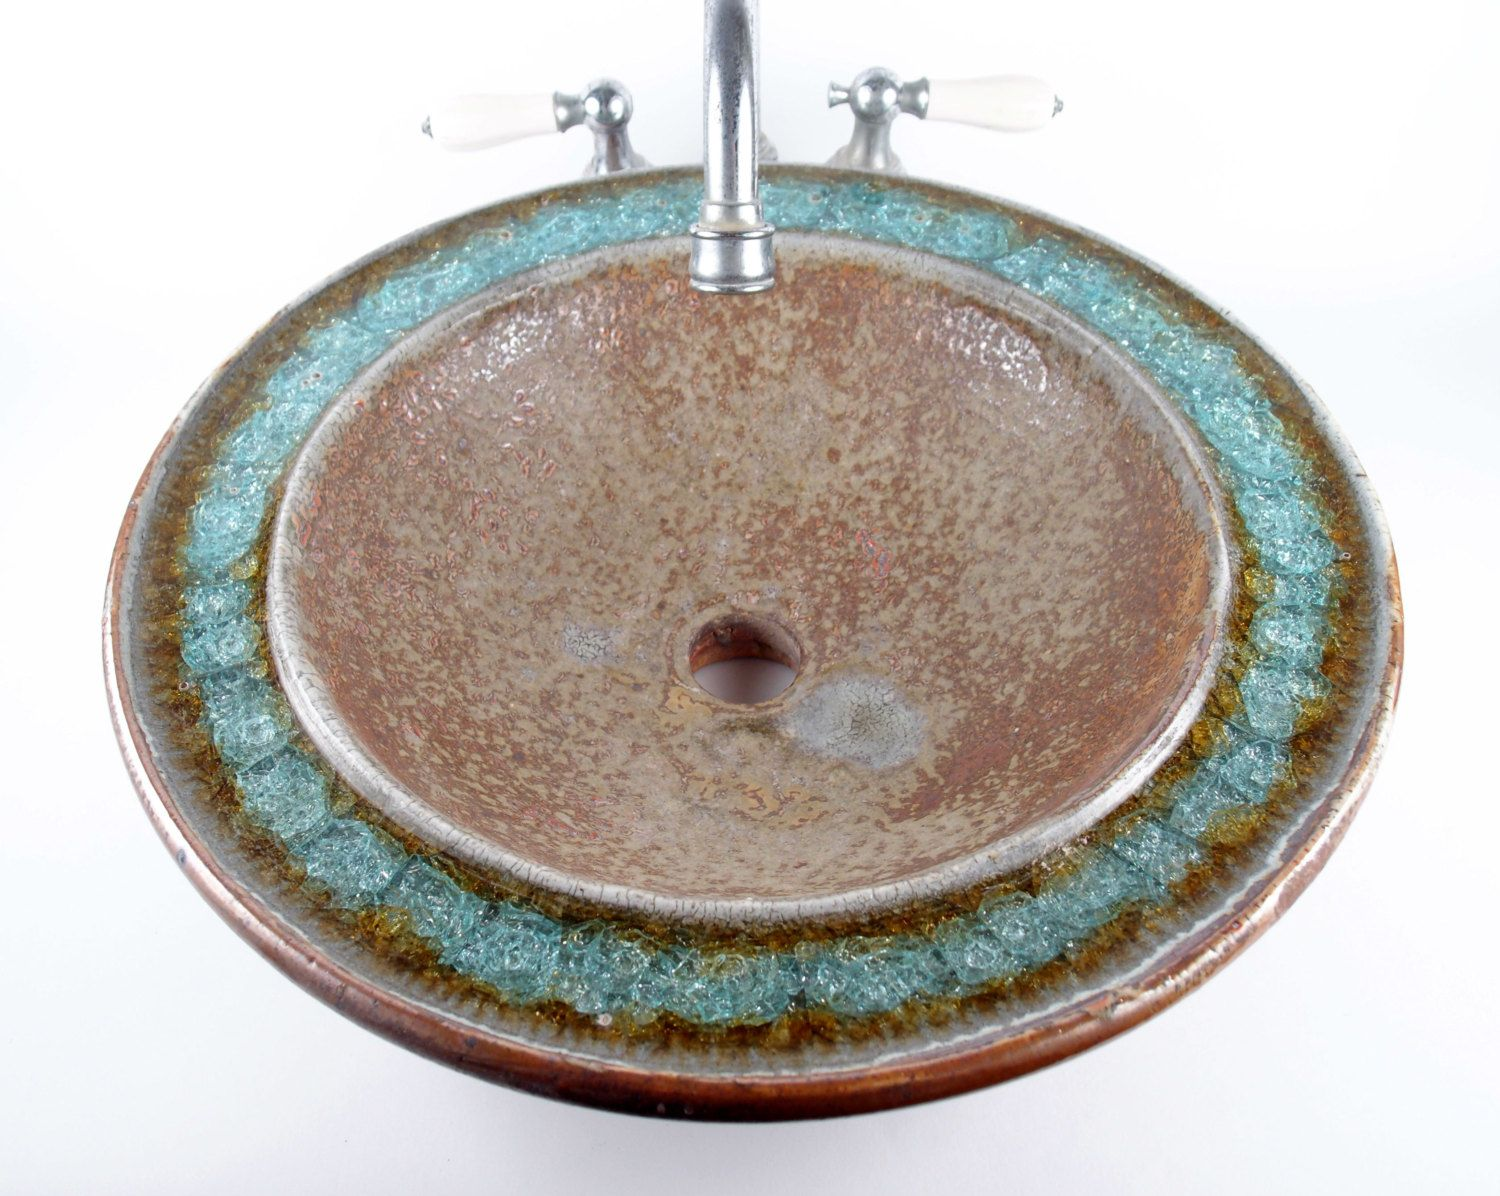 Ceramic Sink With Fused Glass Custommade By KerryBrooksPottery